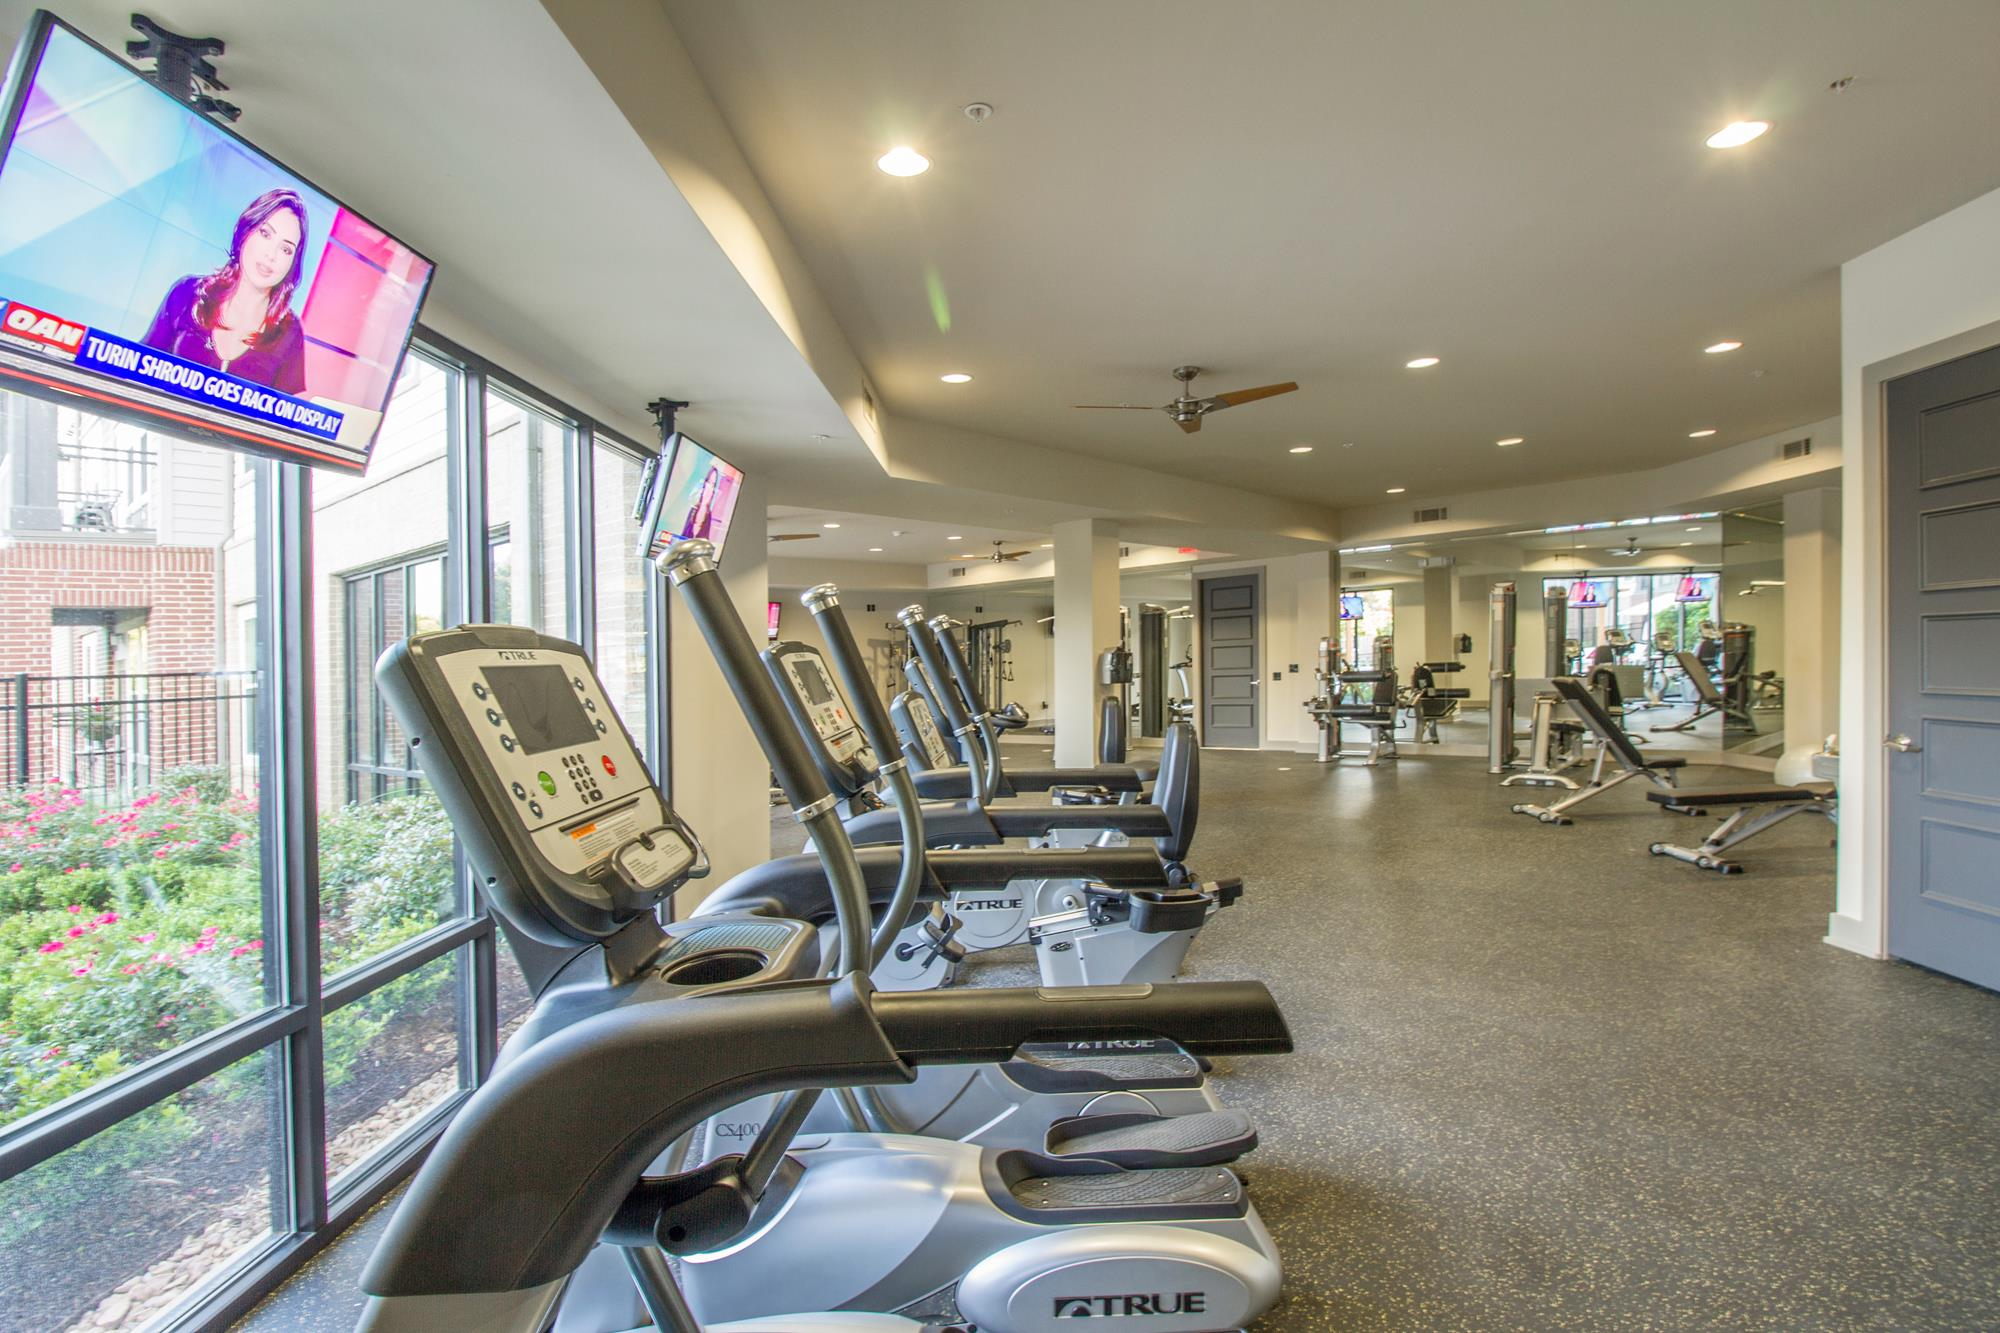 Cardio Equipment at The District, Baton Rouge,Louisiana